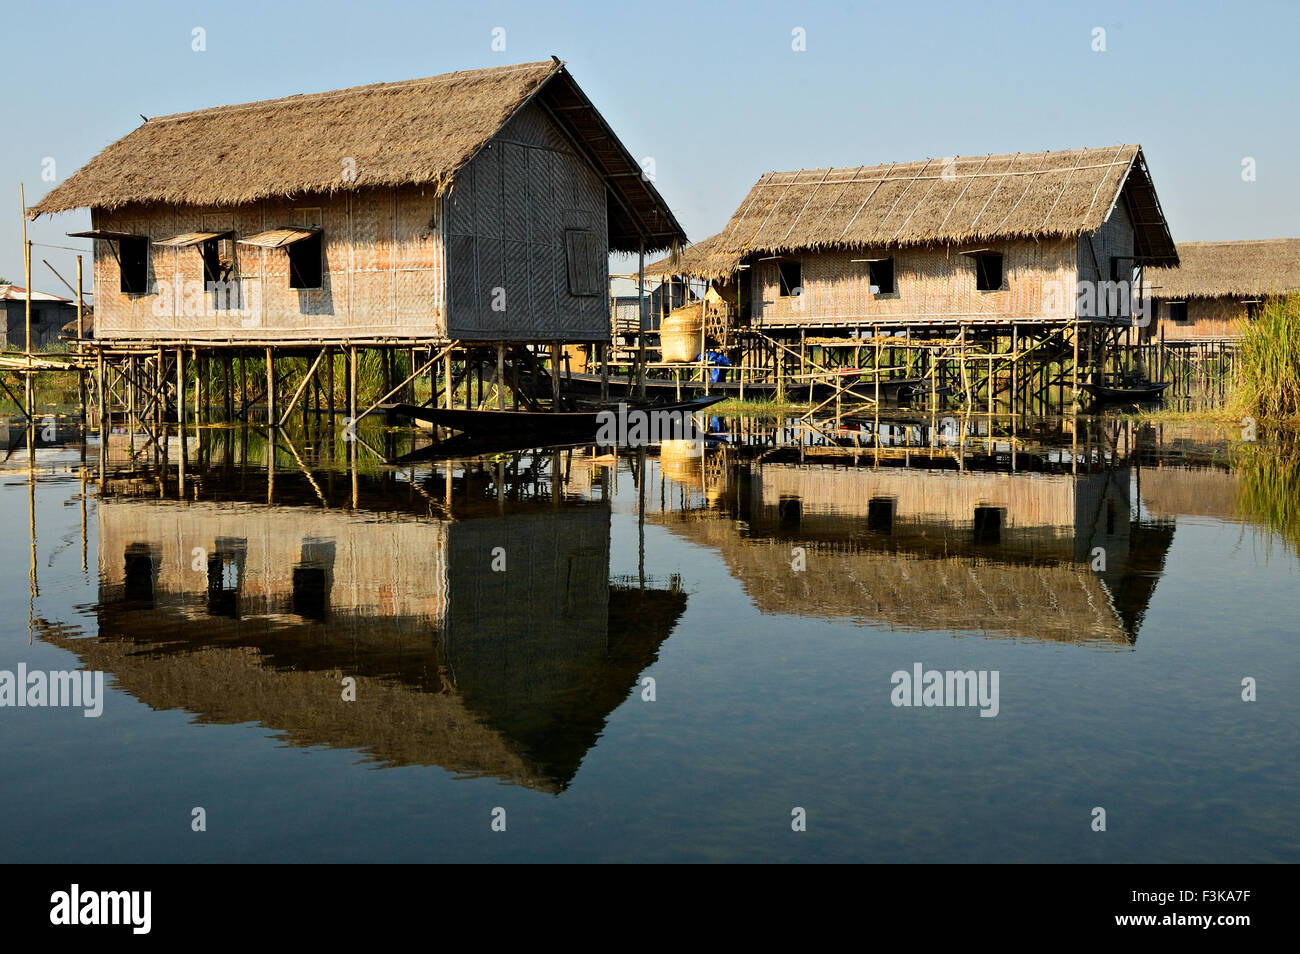 Reflection of wooden stilted houses on Inle Lake, Shan State, Myanmar - Stock Image